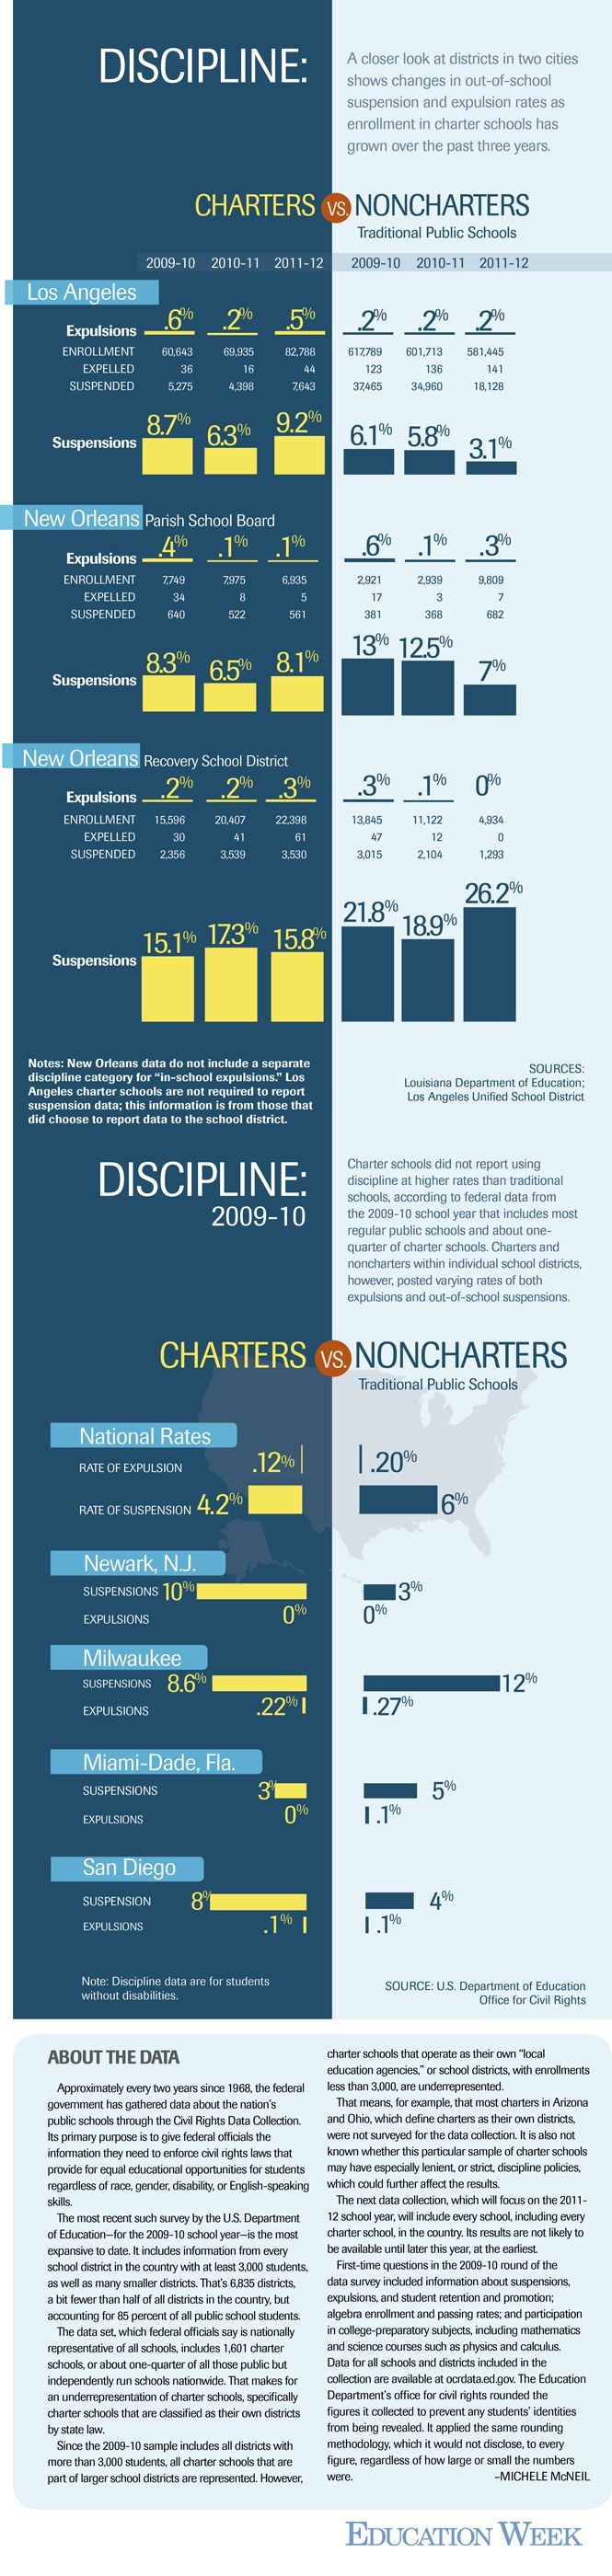 Charter schools' freedom to set and enforce their own discipline rules has raised concerns among educators, policymakers, and parents, who worry that